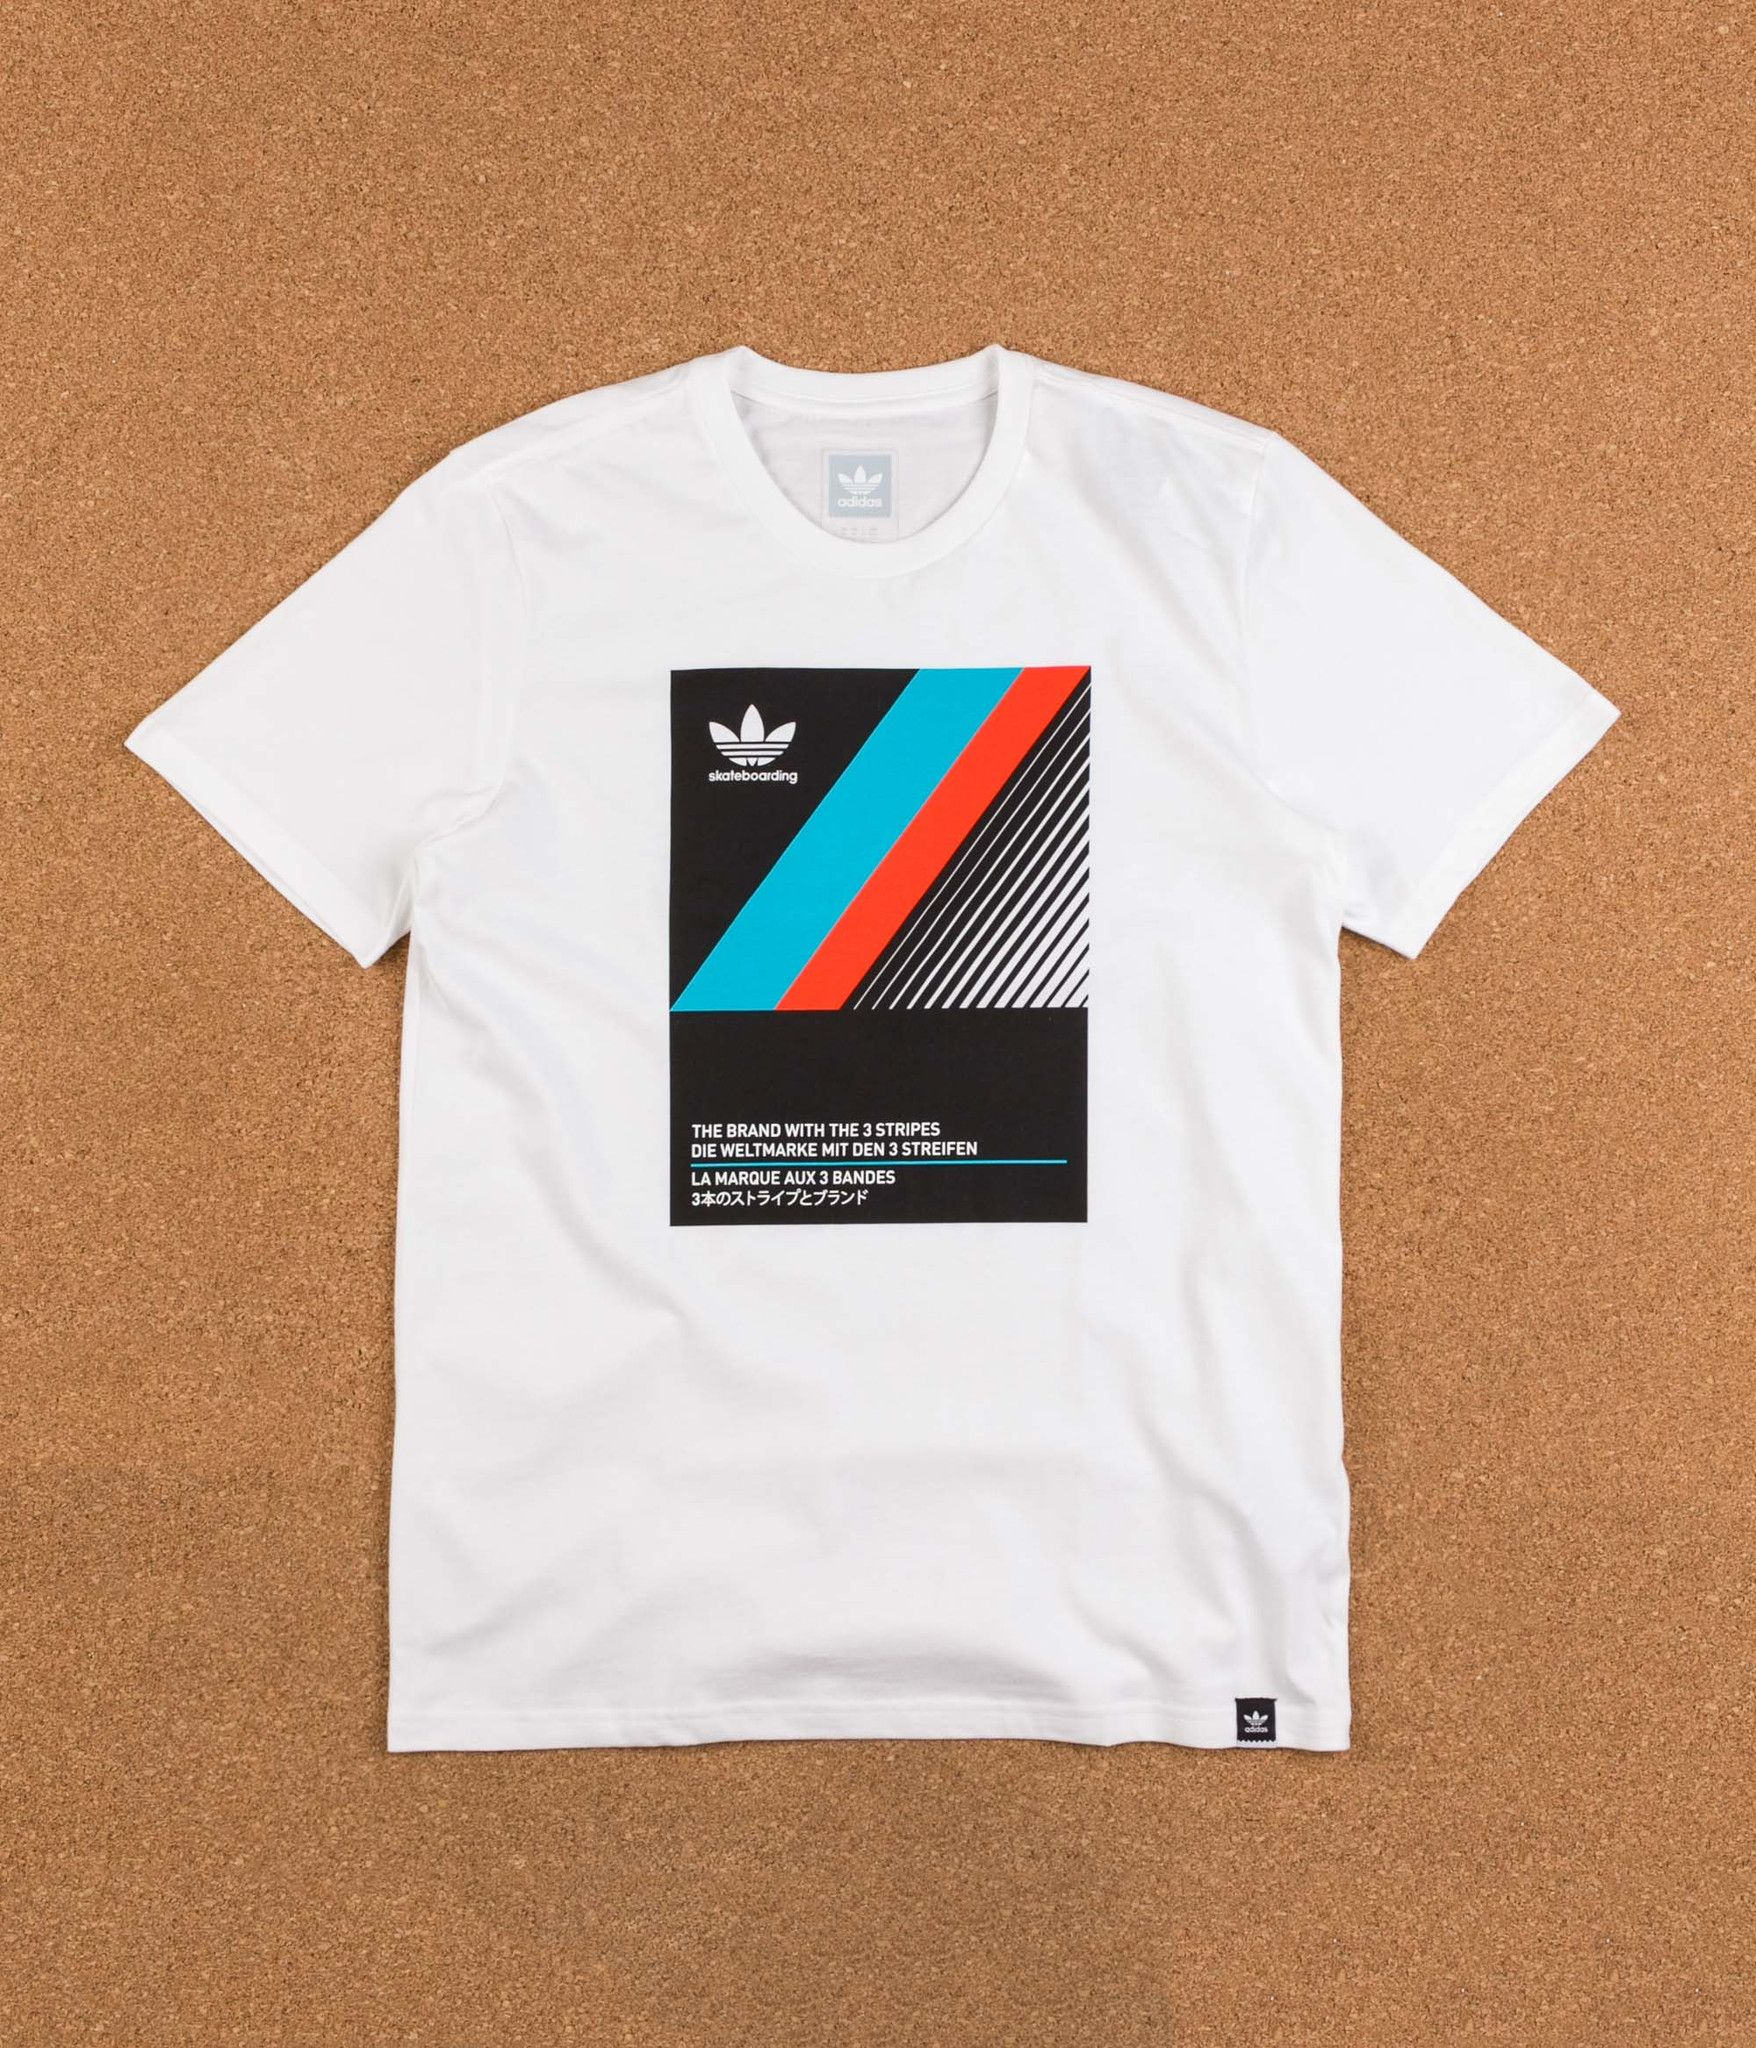 66d0f2cd Adidas VHS Block T-Shirt - White / Black / Energy Blue / Energy ...